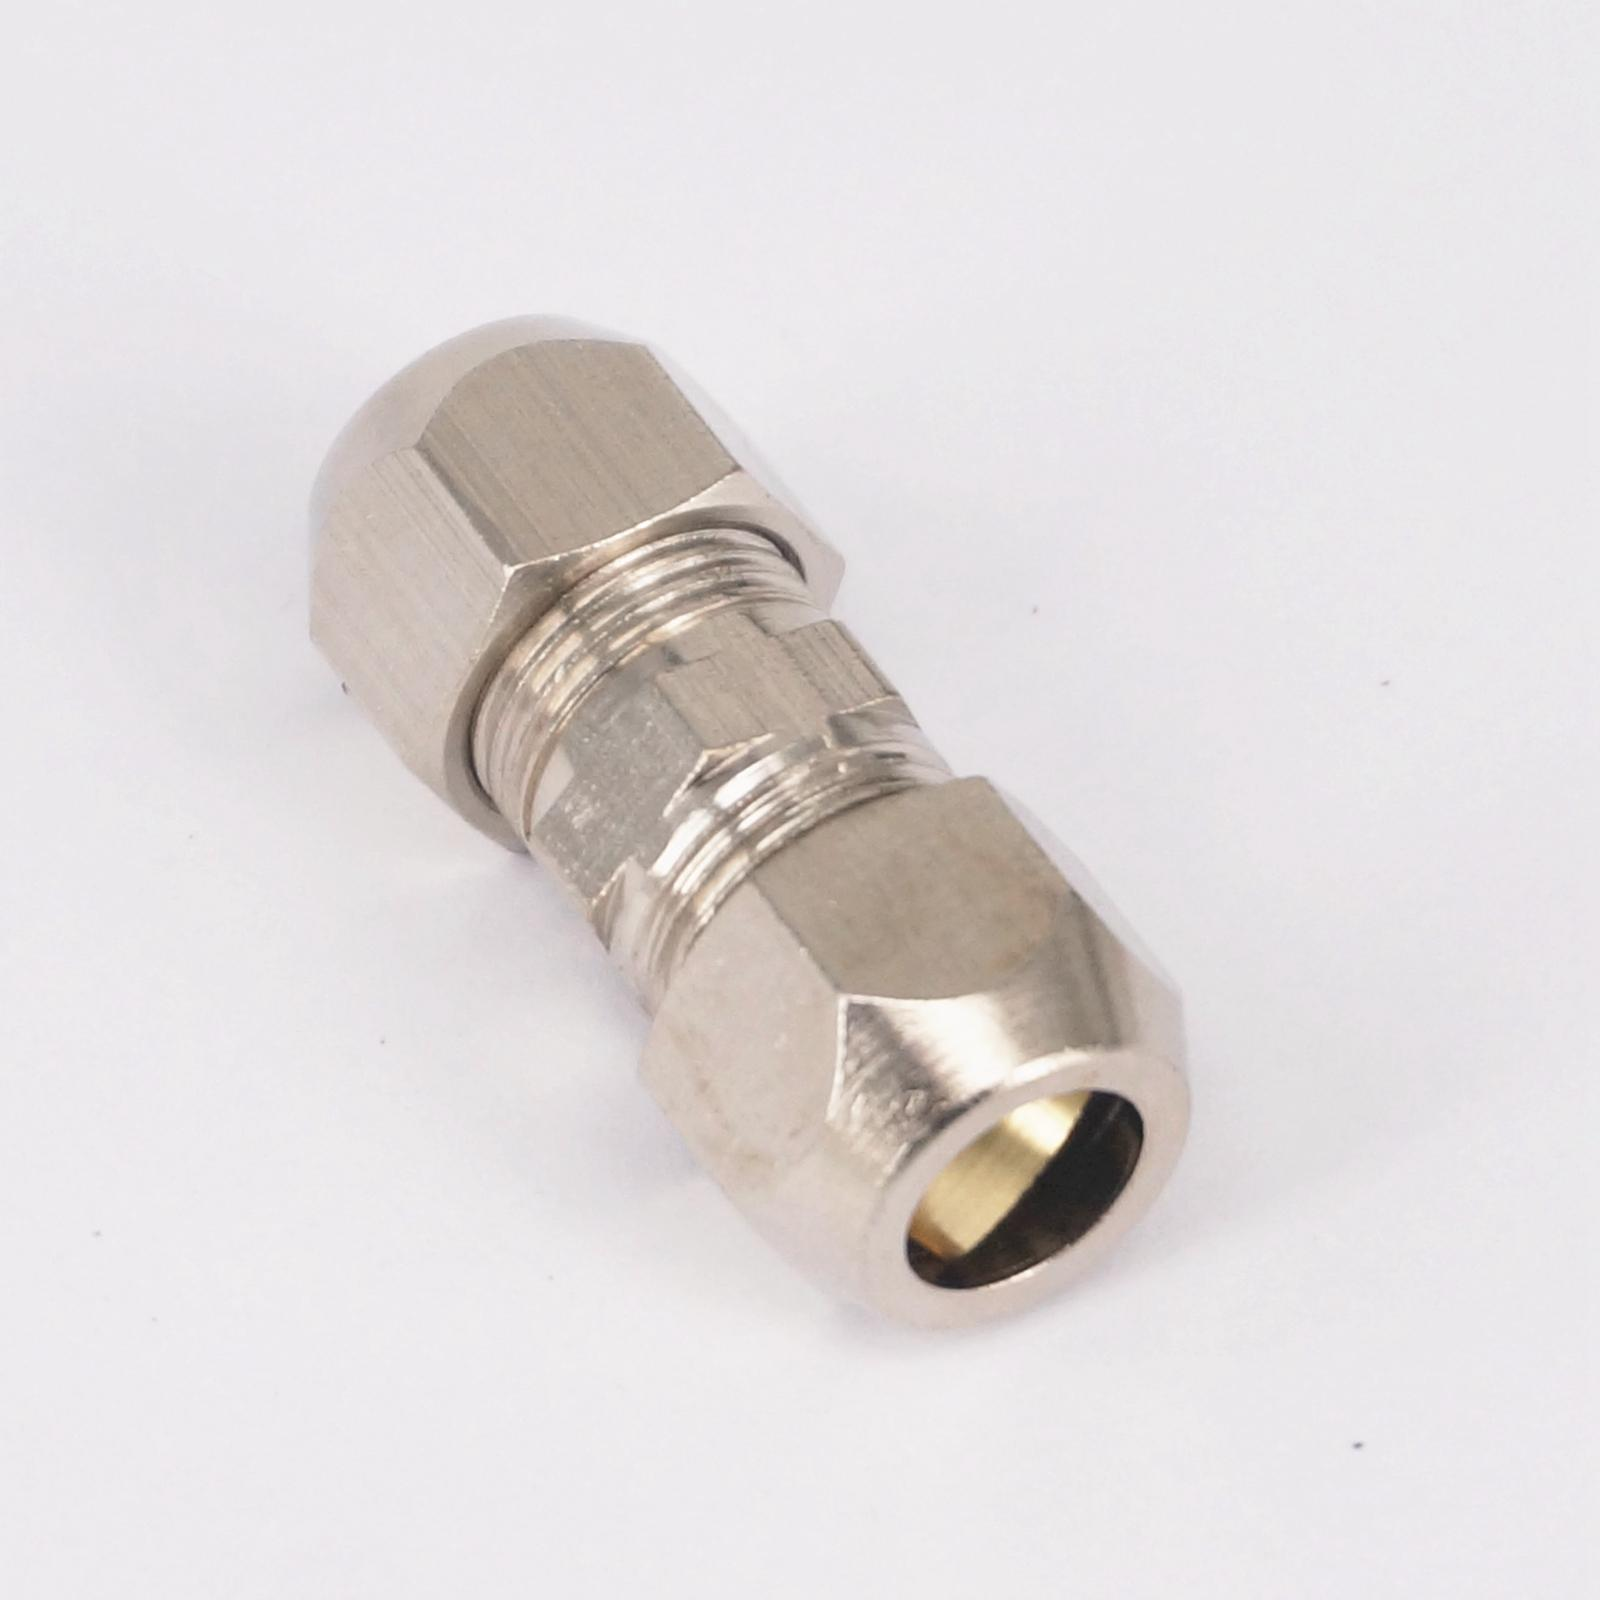 2pcs Straight Brass Fit 8mm OD Tube Coupler Adapter Connector Compression Fitting For Tubing